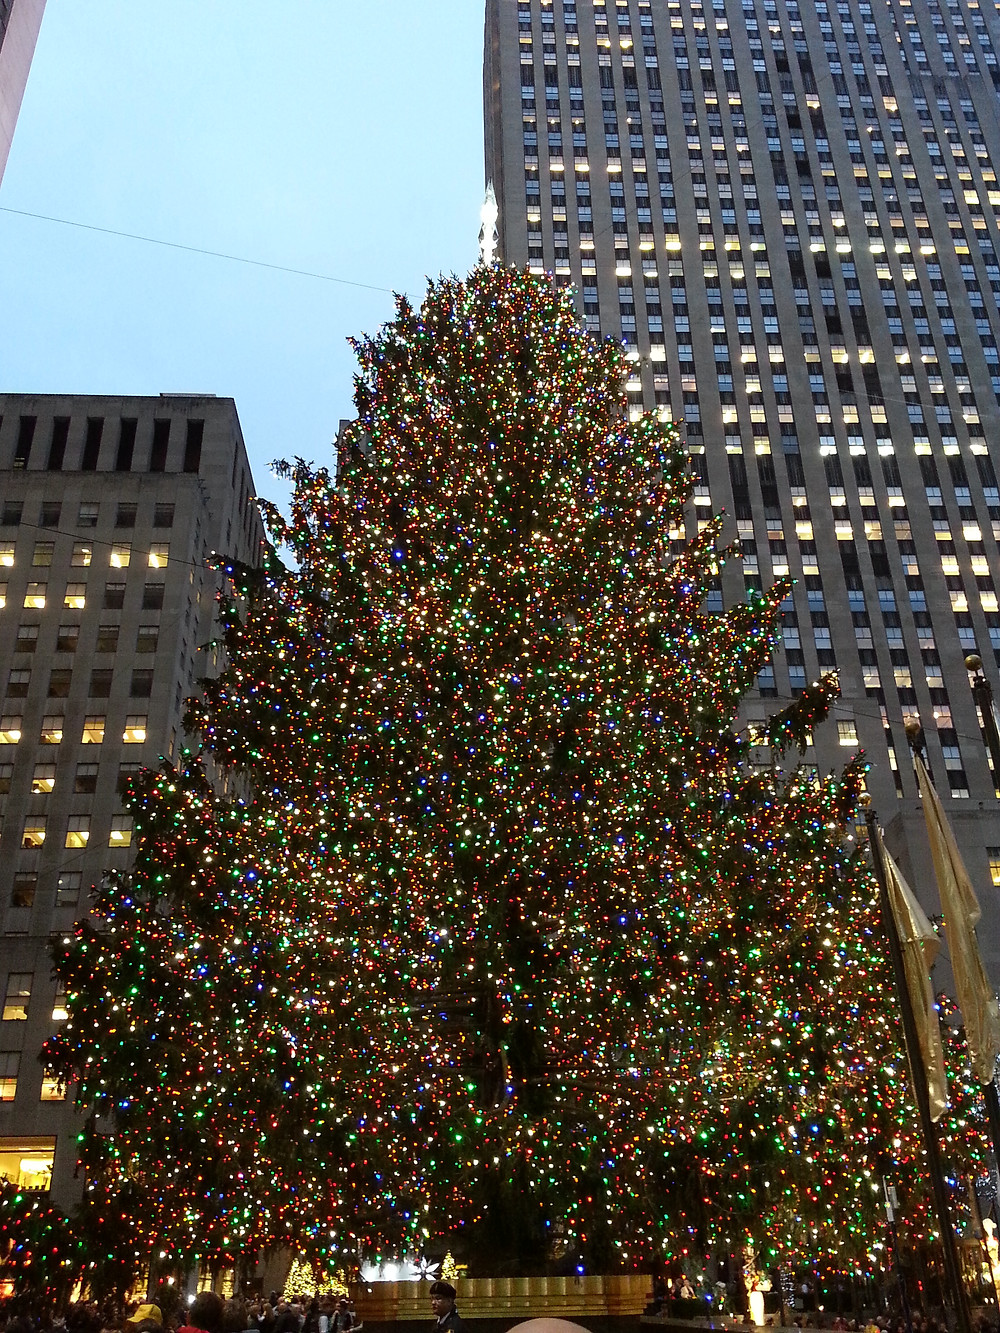 New York City at Christmastime